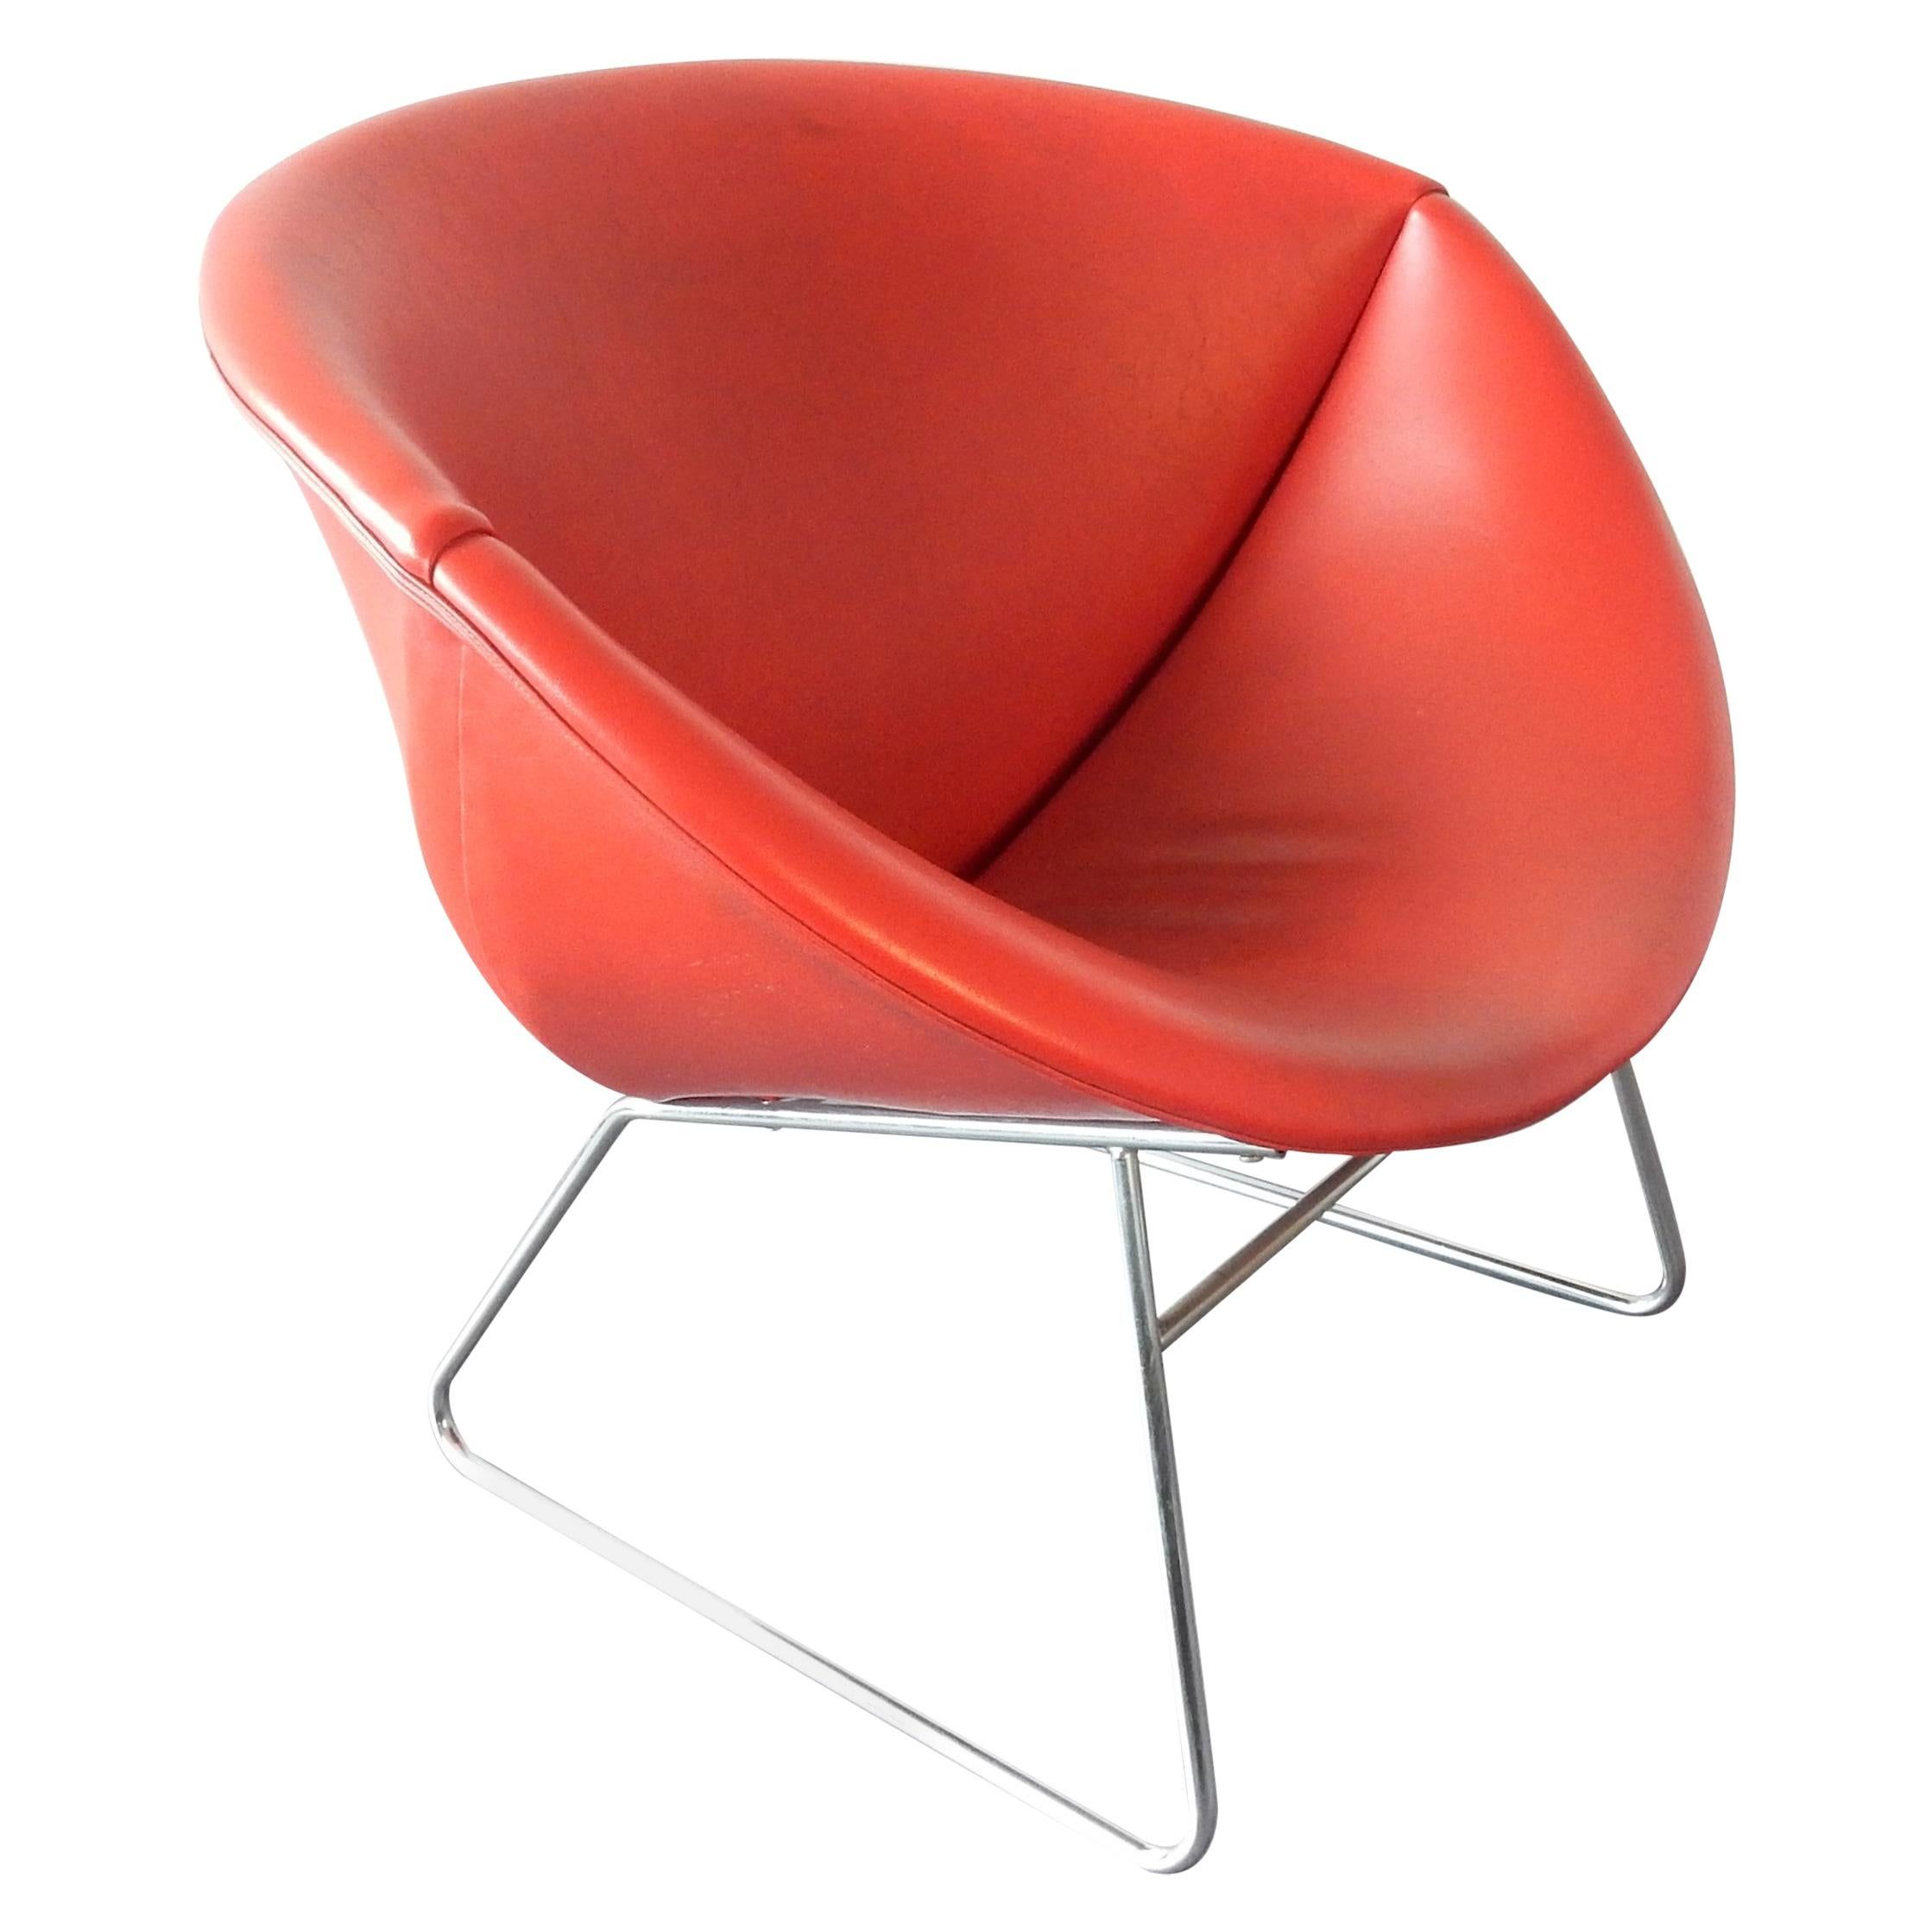 Rare Red Cocco Lounge Chair by JH. Rohe for Rohé Noordwolde, Netherlands, 1970s